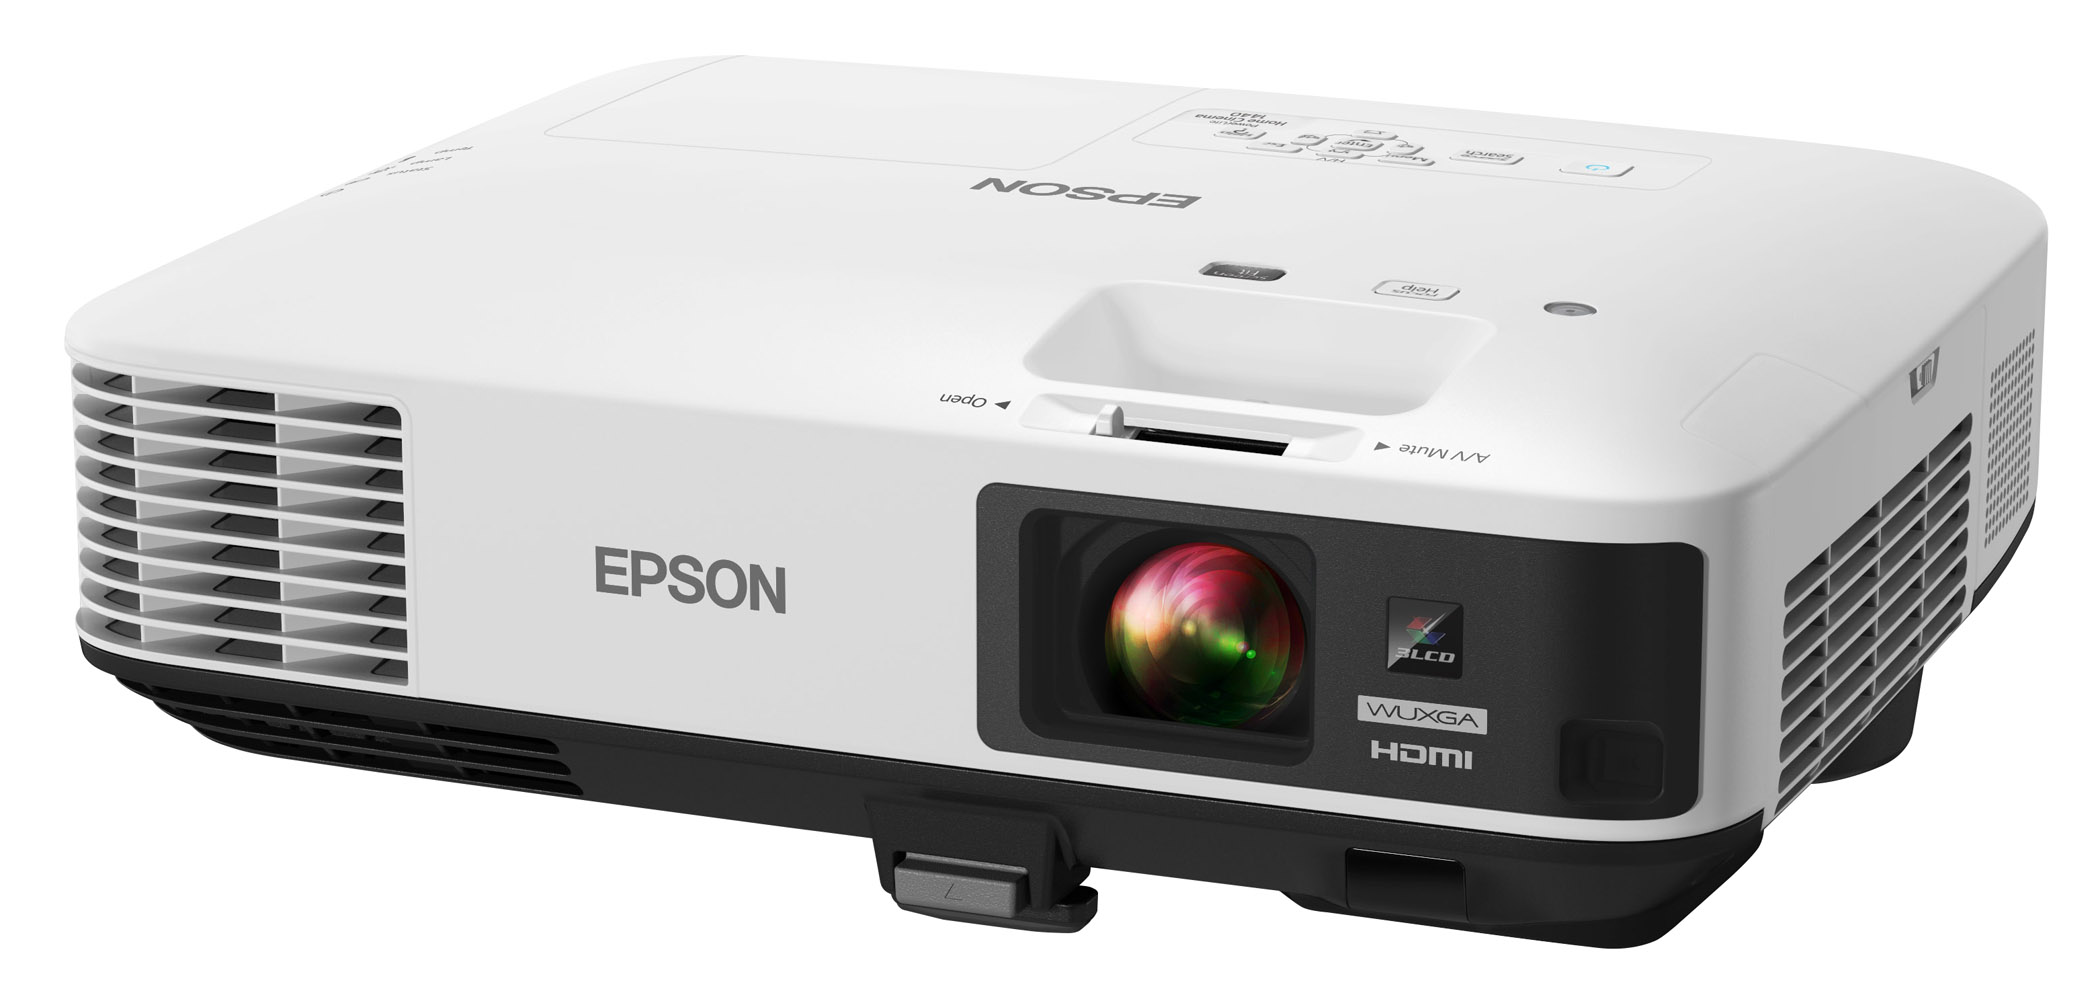 #bestbuy #technology #movies #epson #epsonamerica #ad